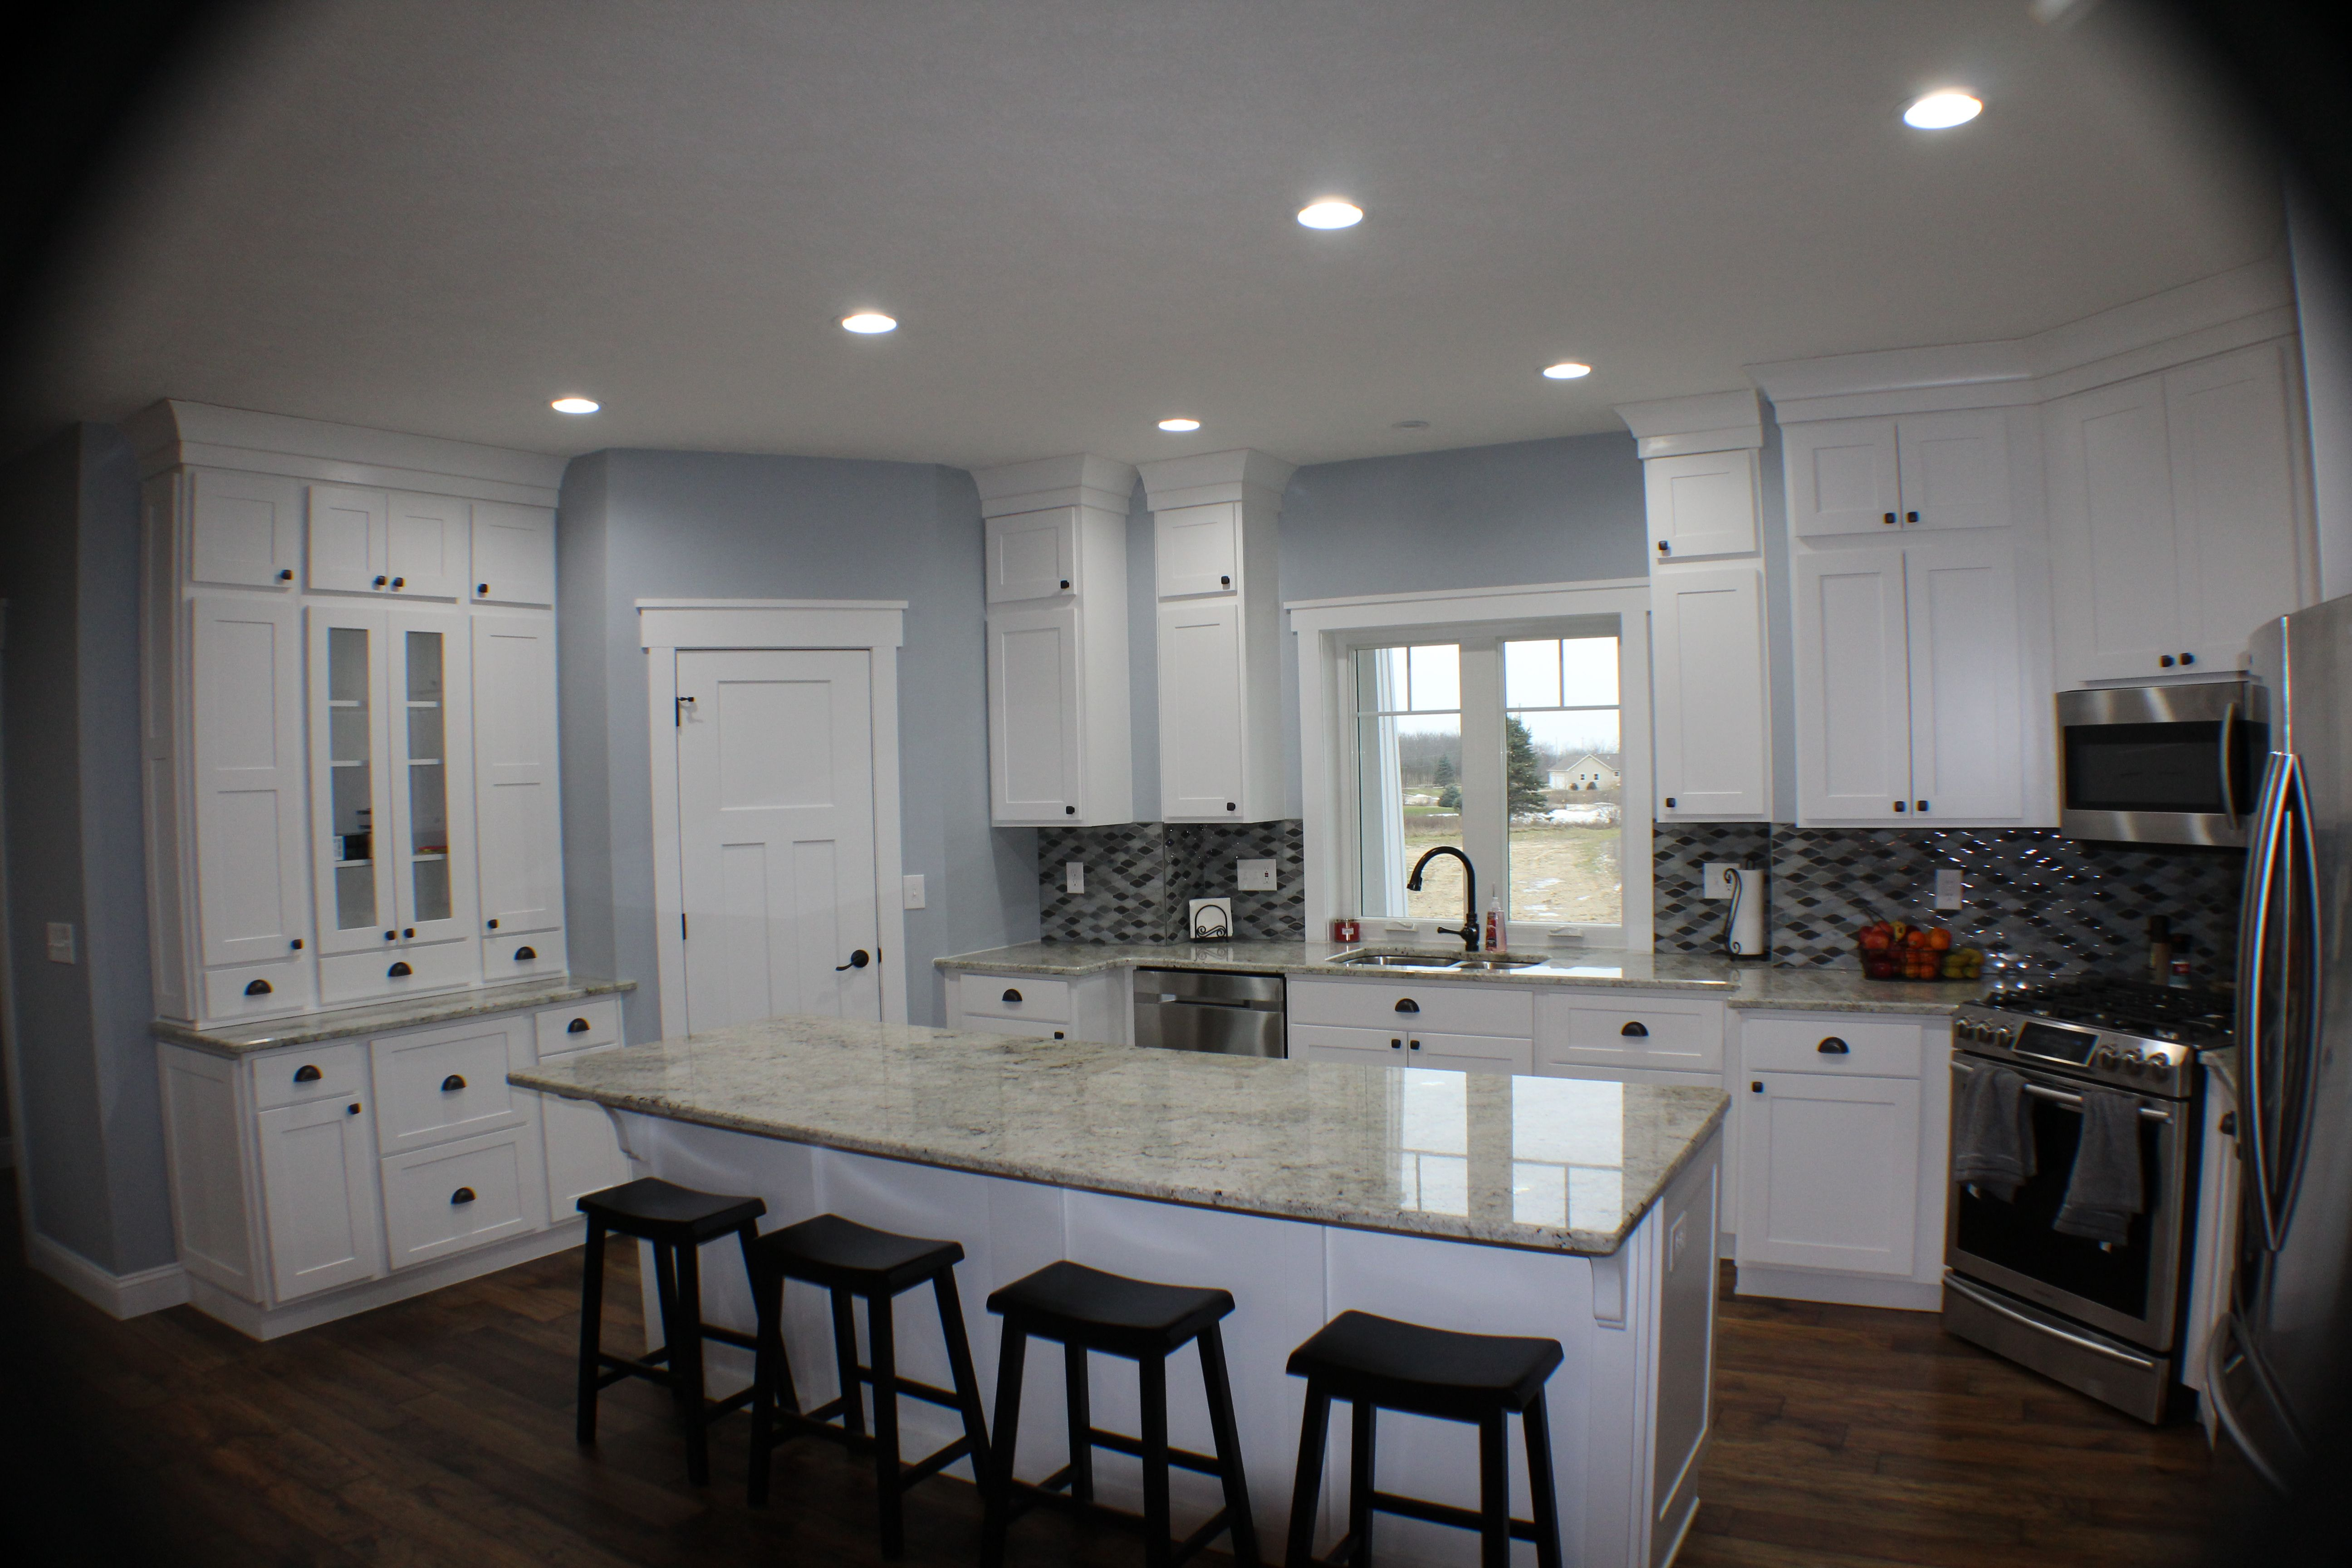 Showplace Cabinetry: White Paint Pendleton 275 Door style ...